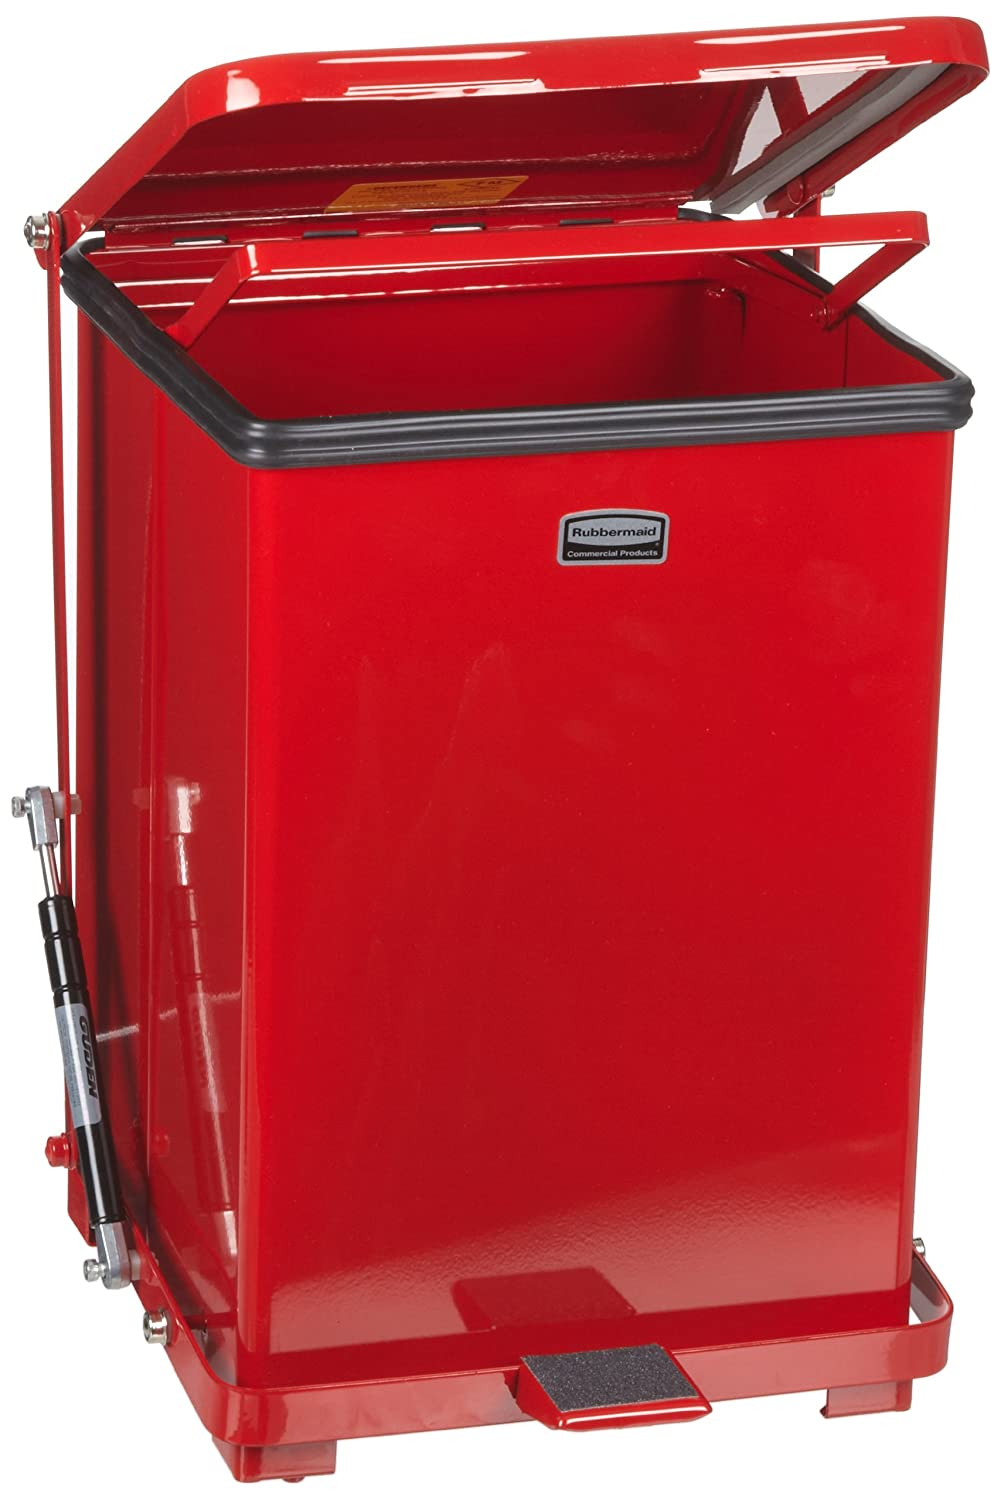 40-gallon Rubbermaid Commercial FGQST40ERBRD The Silent Defenders Steel Step Trash Can Square with Retaining Band Red